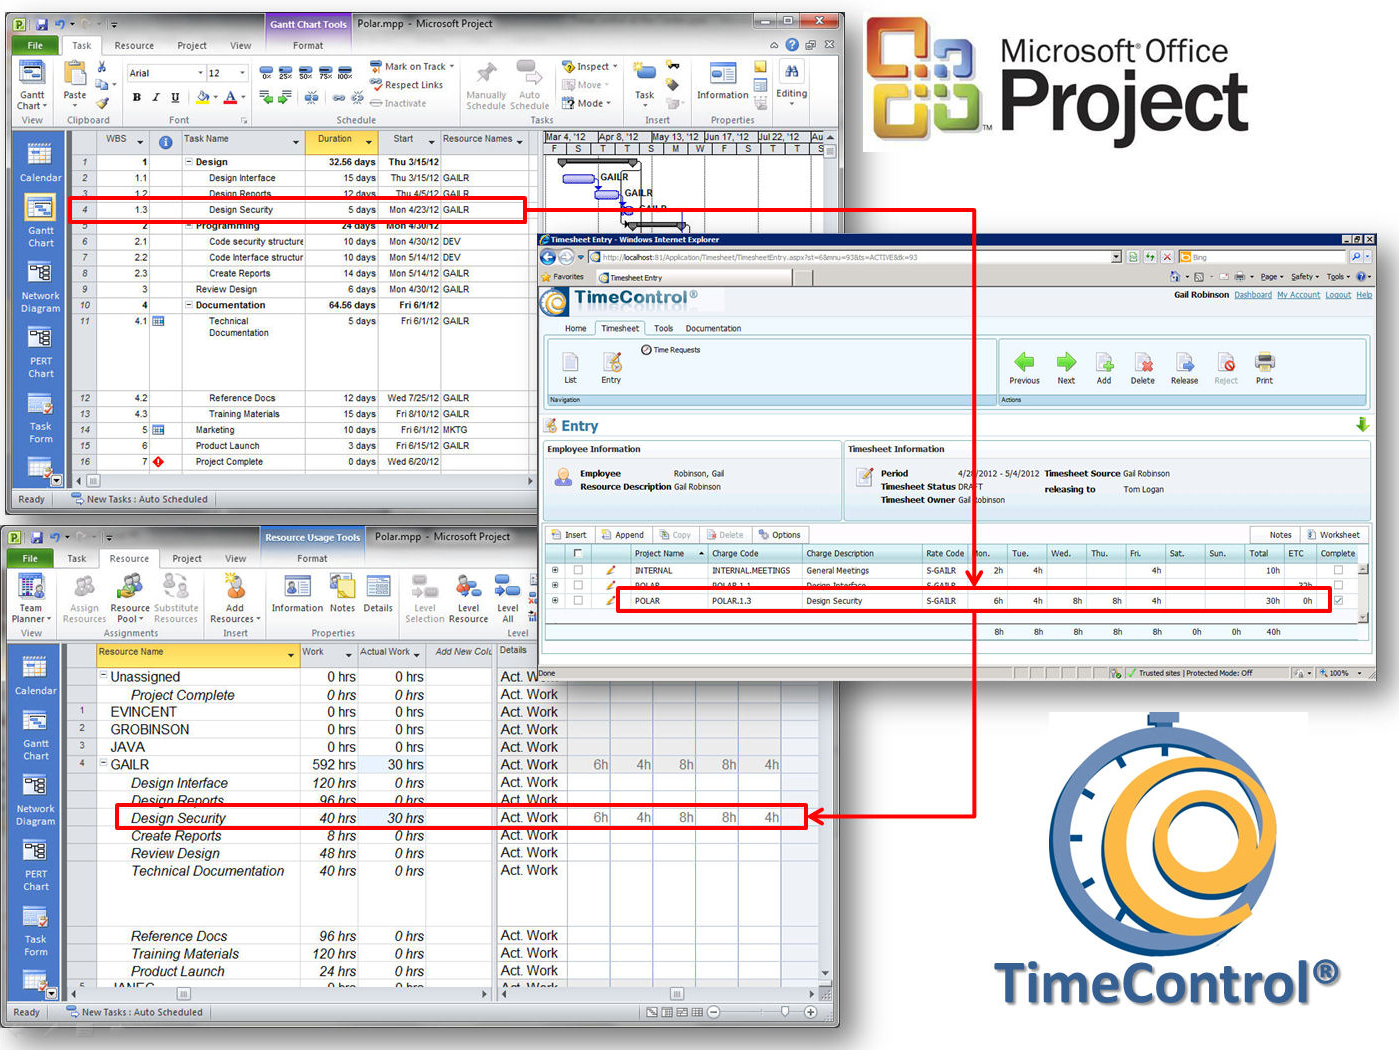 Microsoft Project and TimeControl